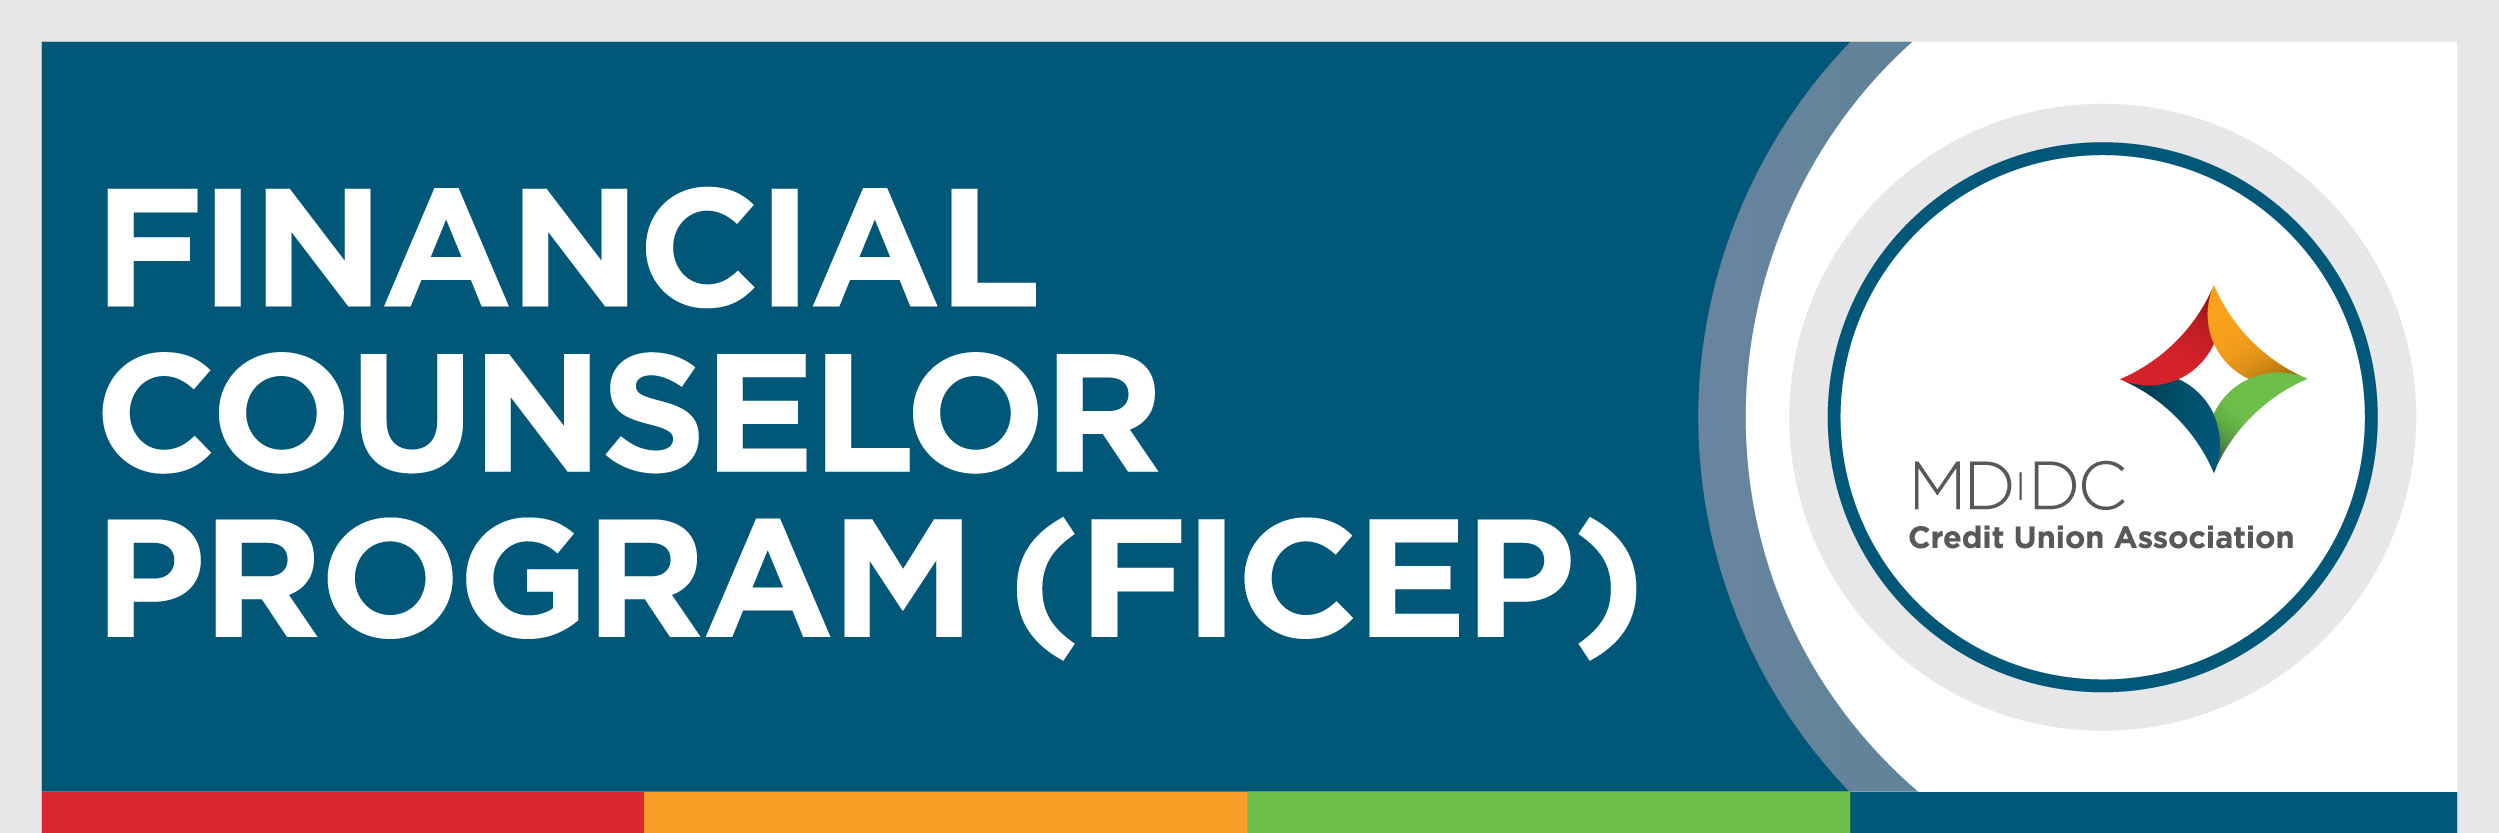 Certified Financial Counseling Program (FICEP)